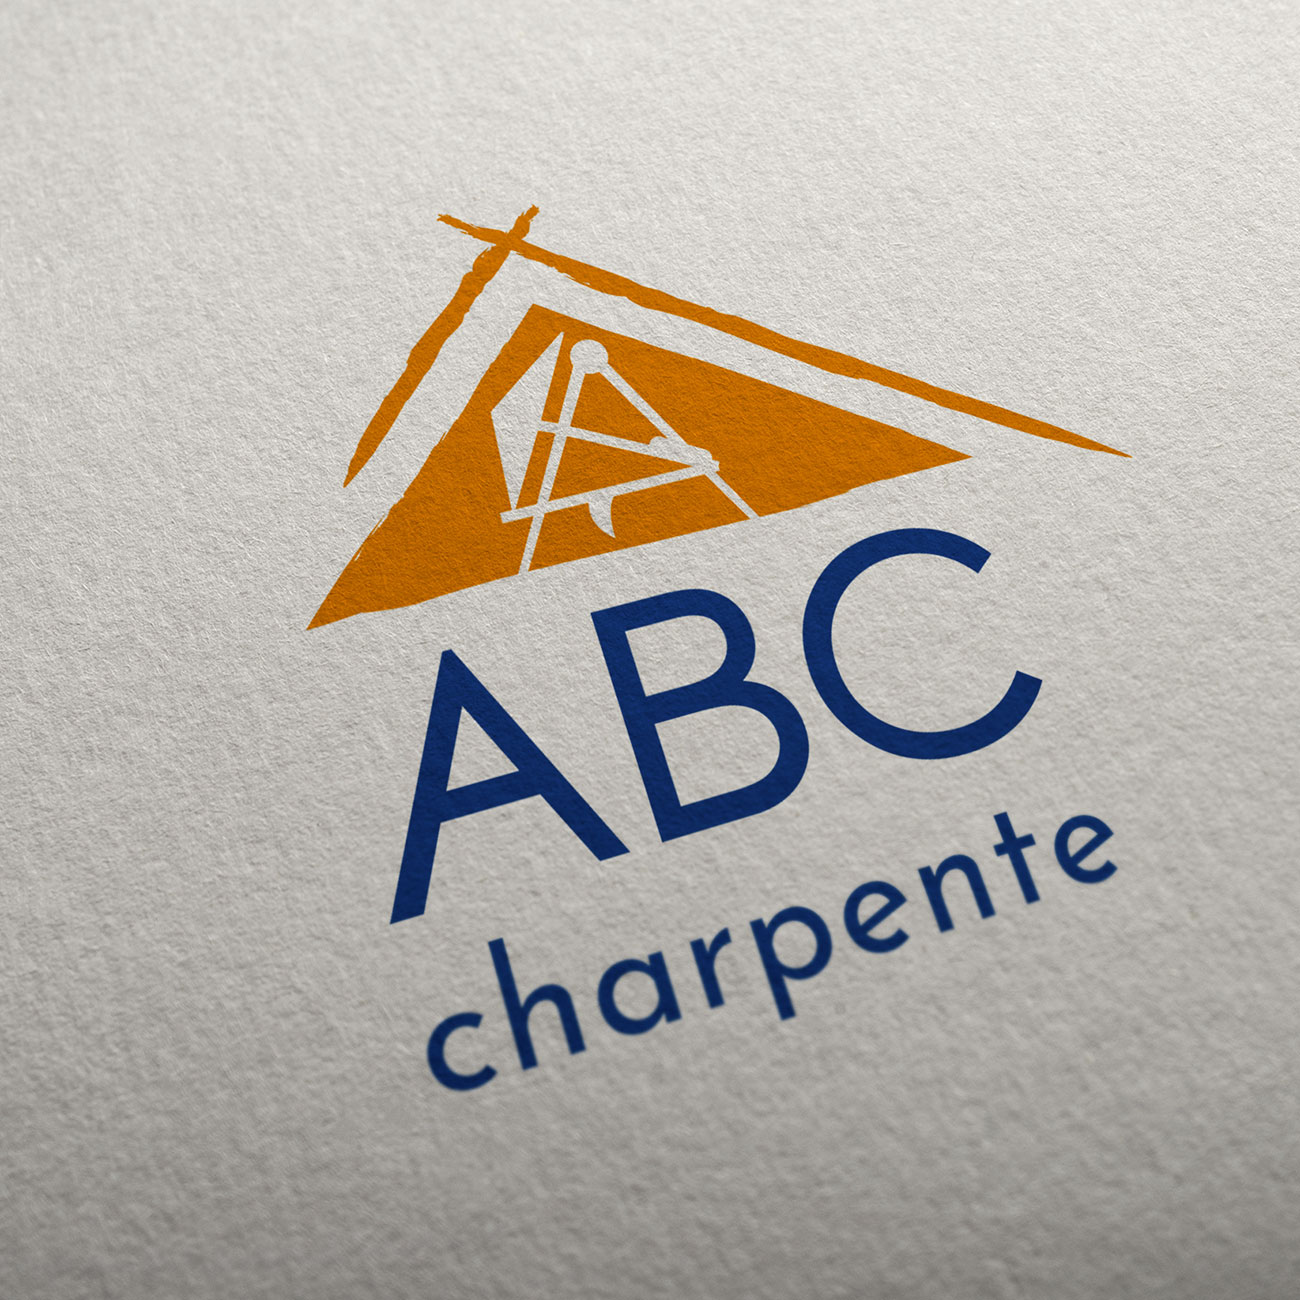 Logo ABC Charpente